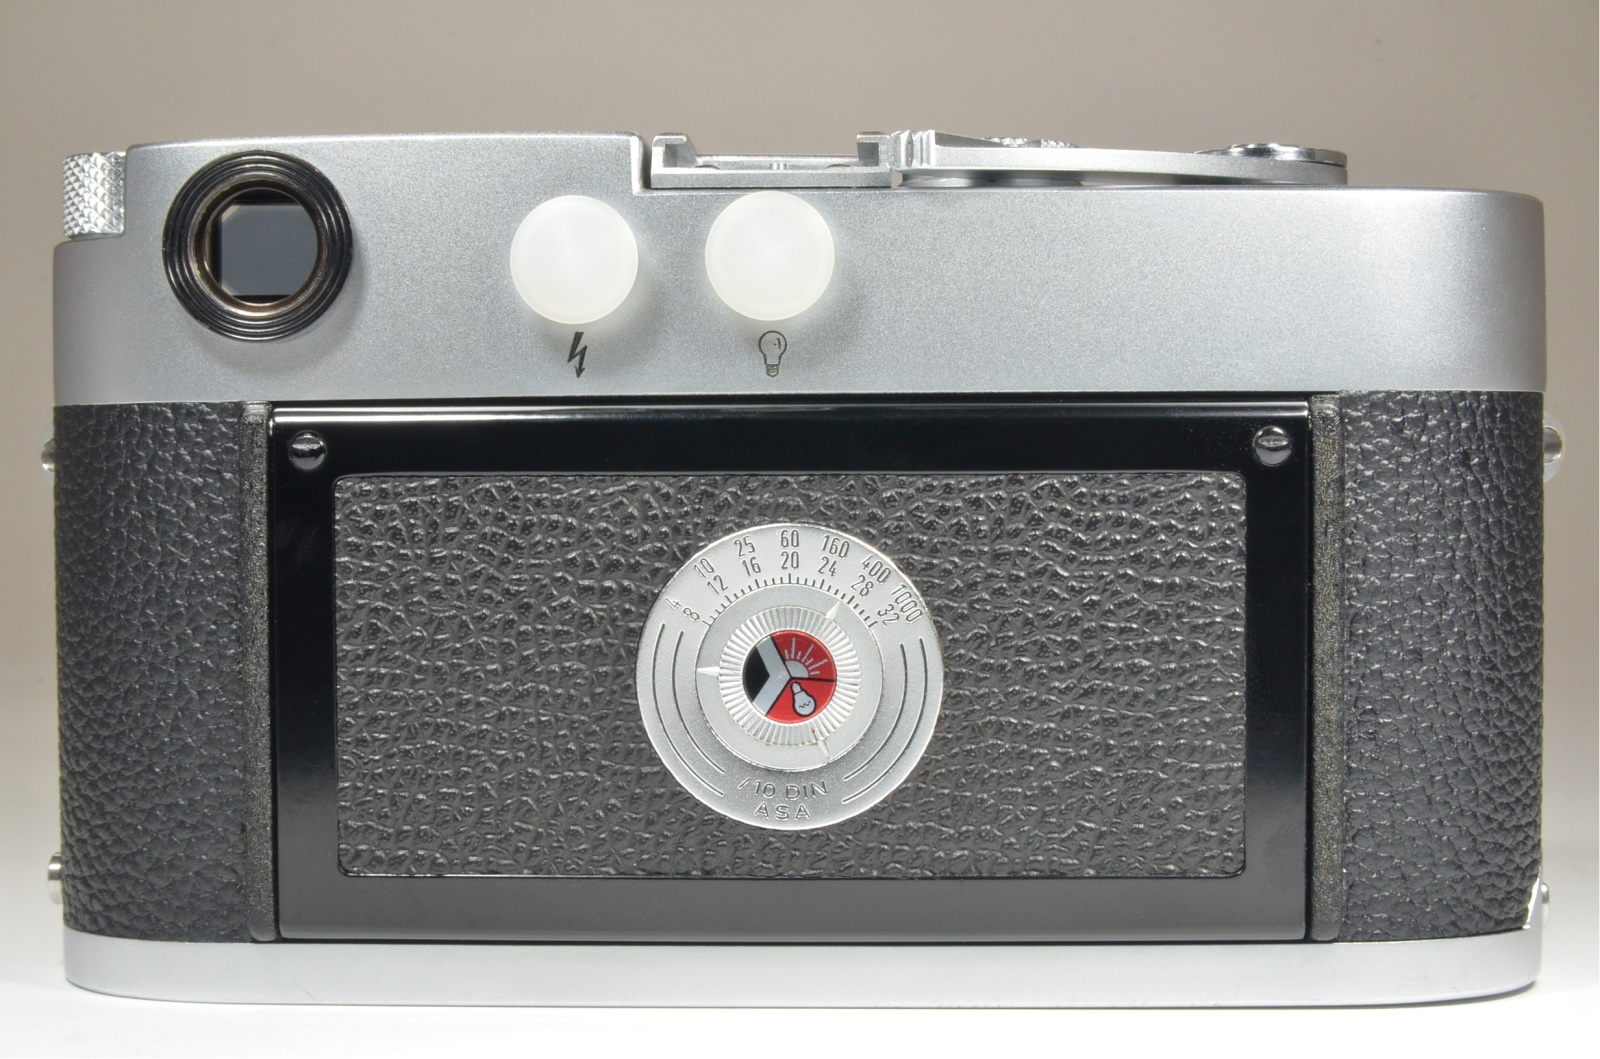 leica m3 single stroke s/n 985759 year 1959 with leather case and strap